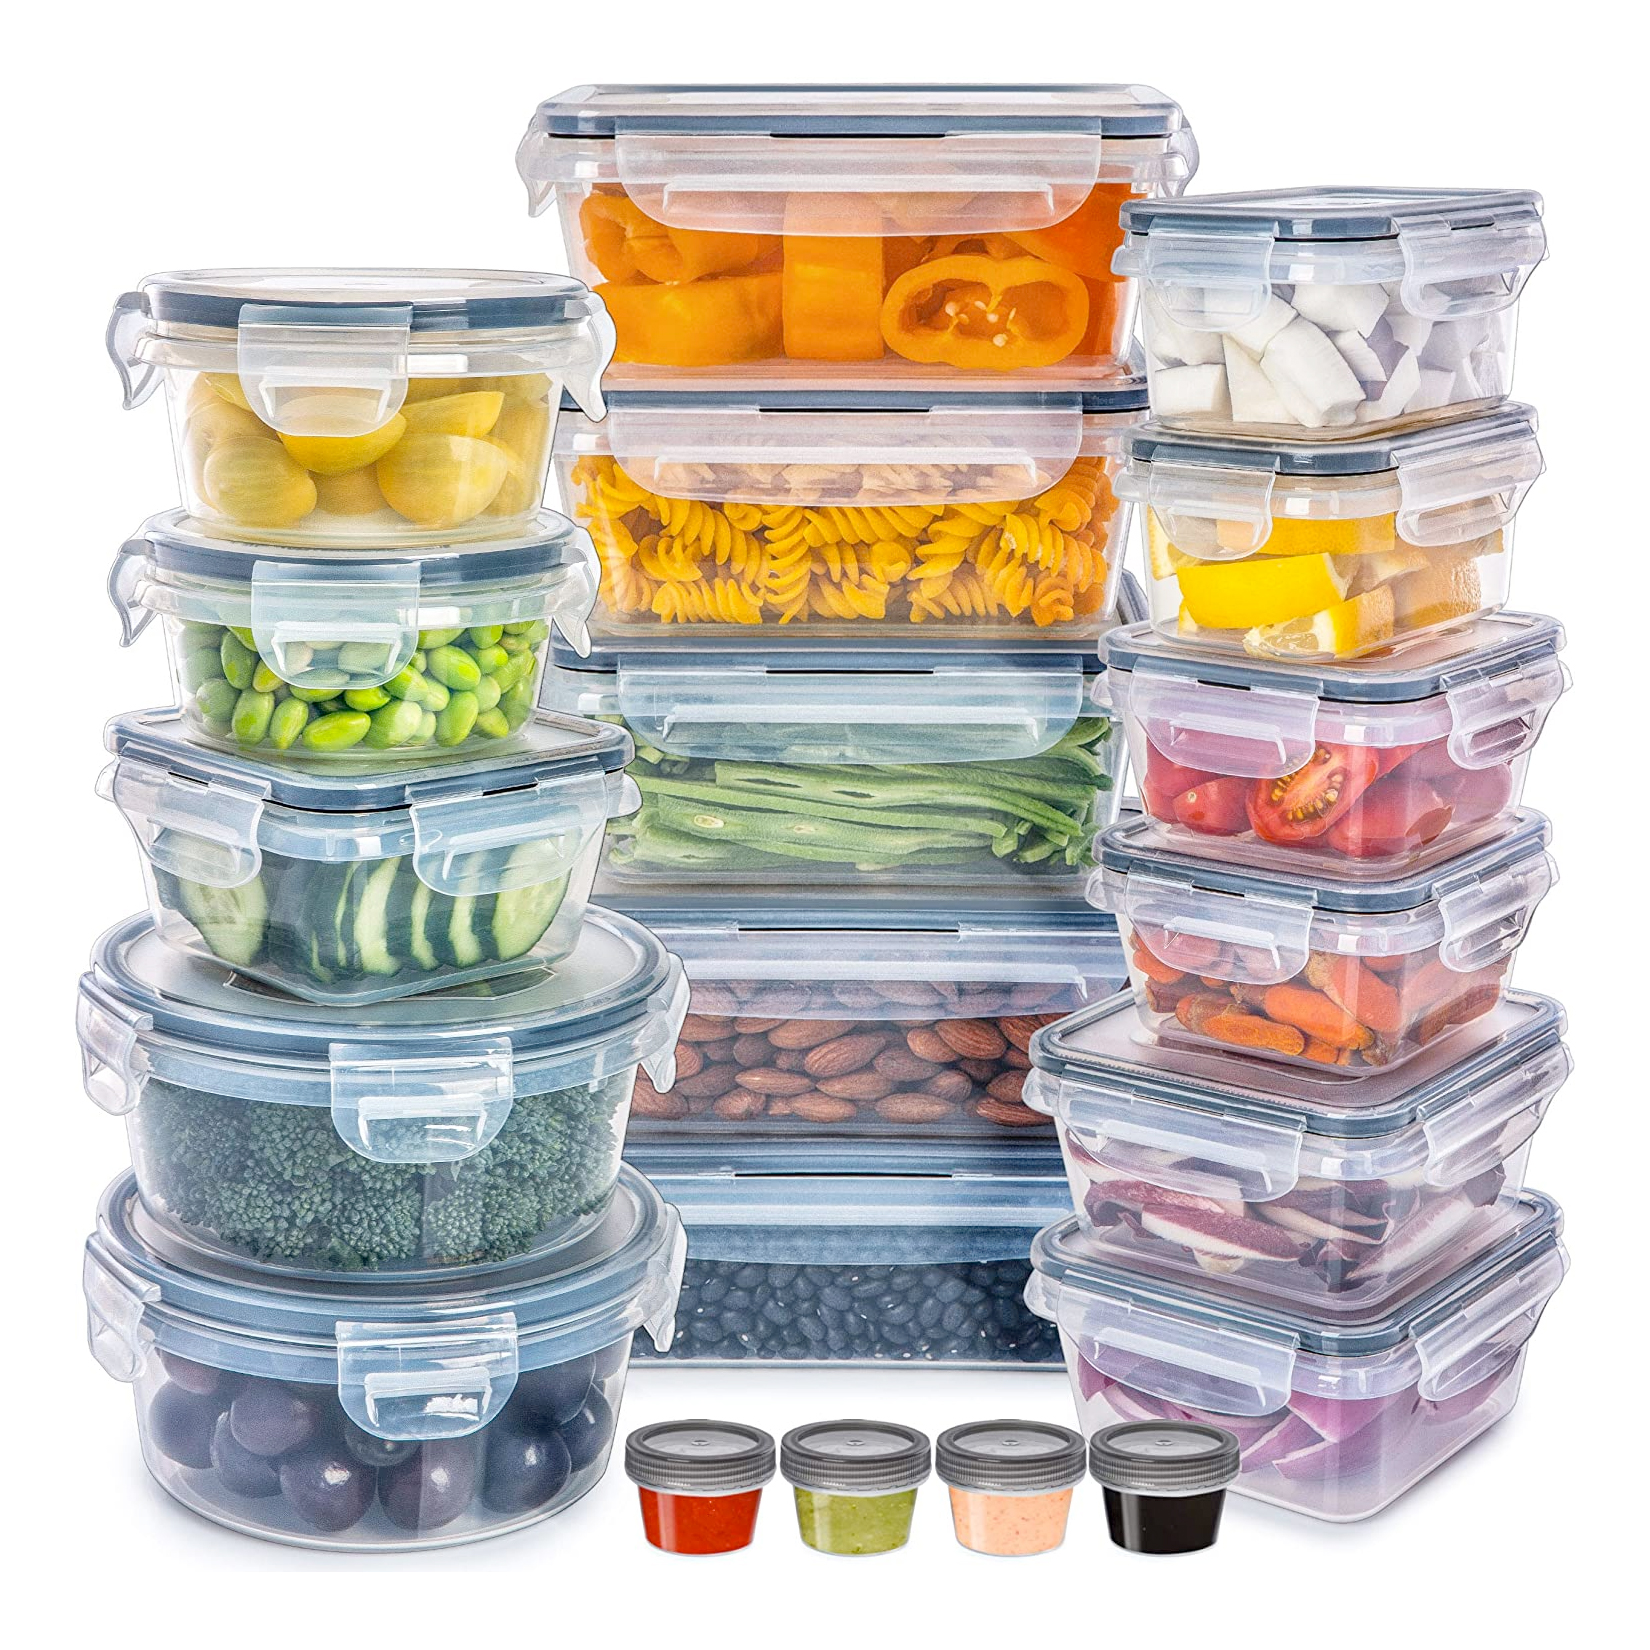 Fullstar Plastic Food Storage Containers with Lids